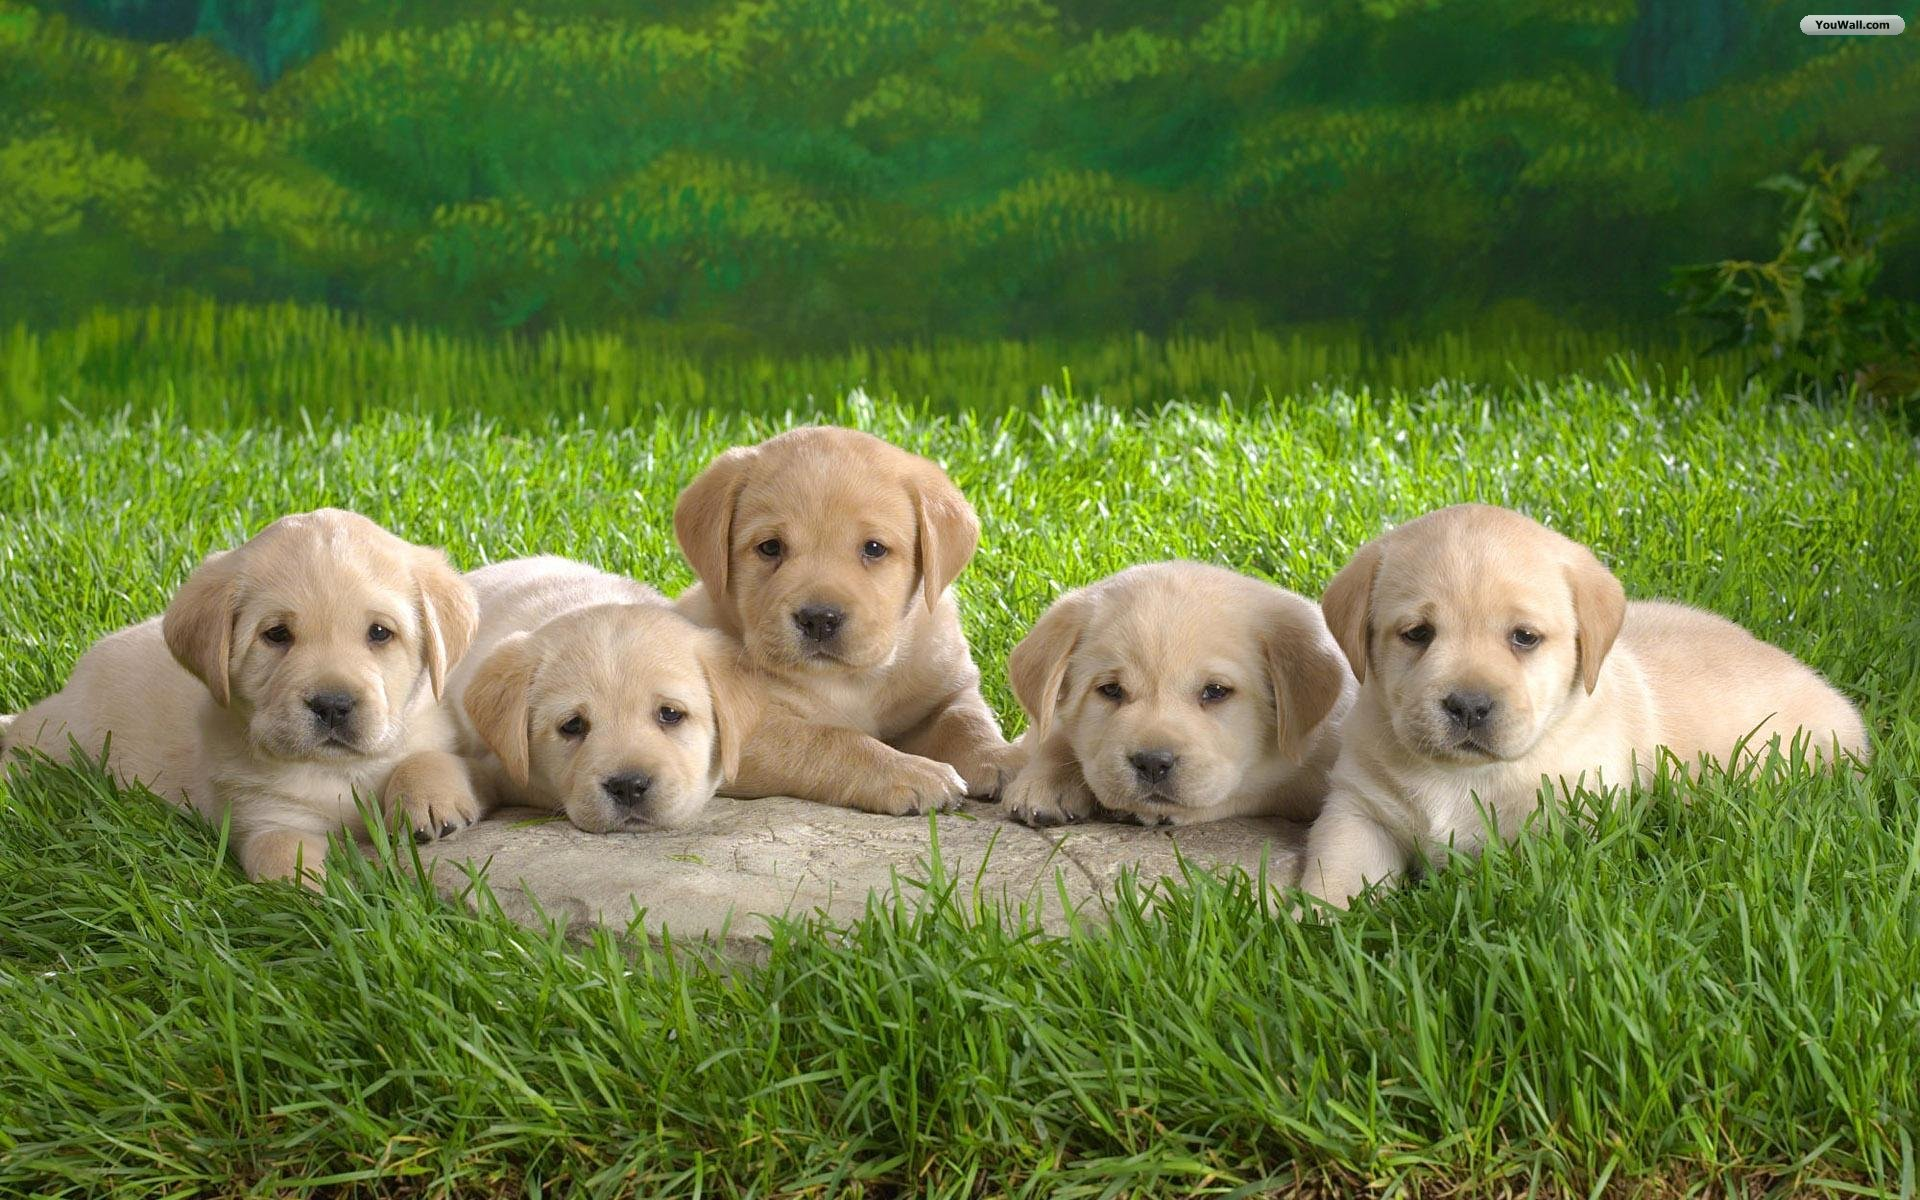 Cute Puppy Desktop Backgrounds Cute desktop wallpaper 1920x1200